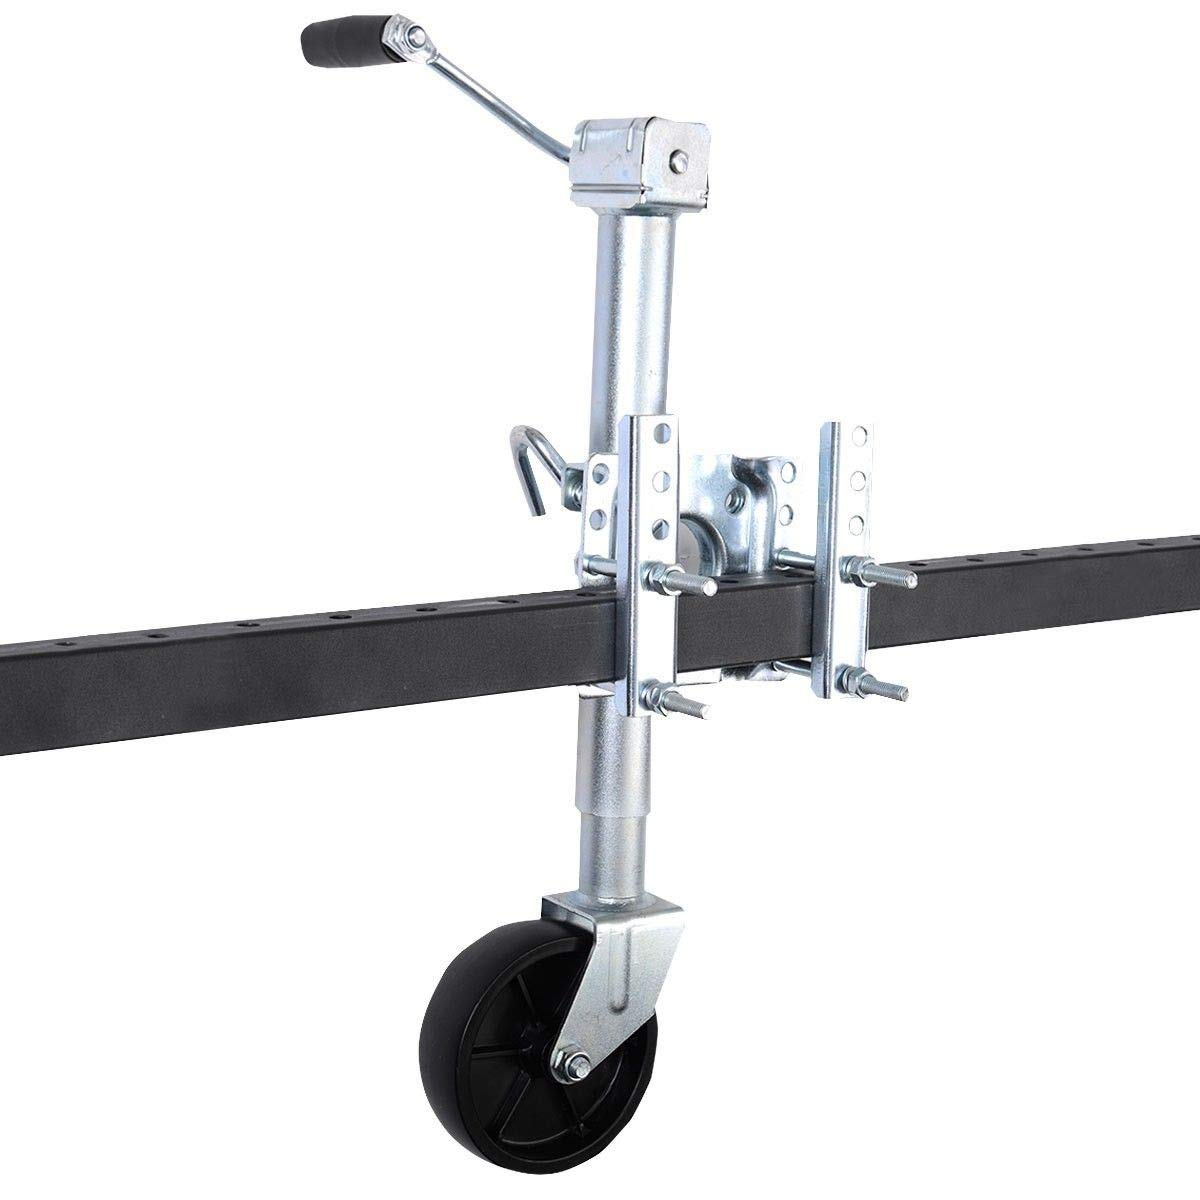 CWY 1000 lbs Swing Away Trailer Jack with Swivel Wheel Only by eight24hours by CWY